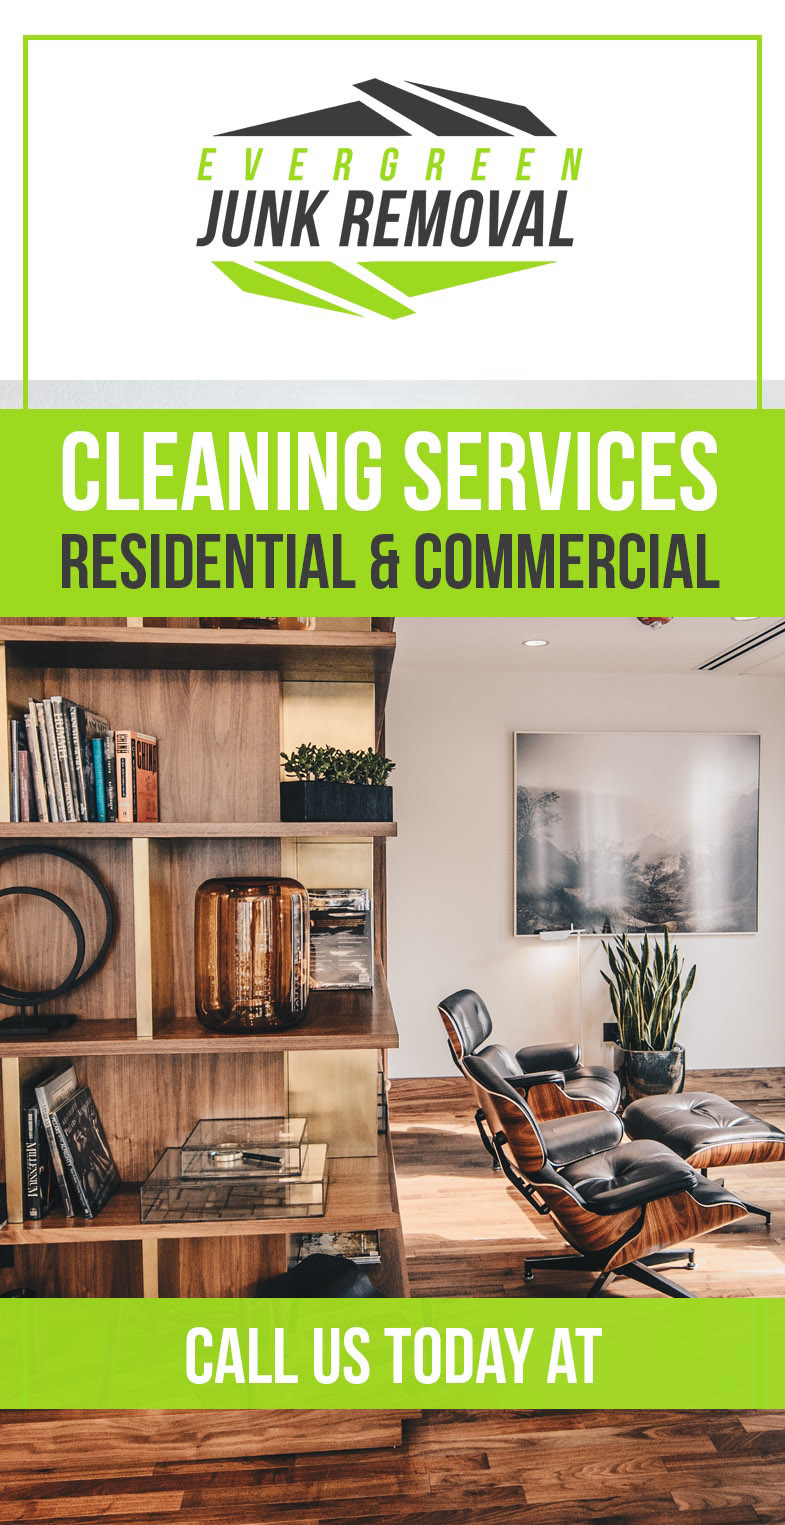 Jupiter Inlet Colony Commercial Cleaning